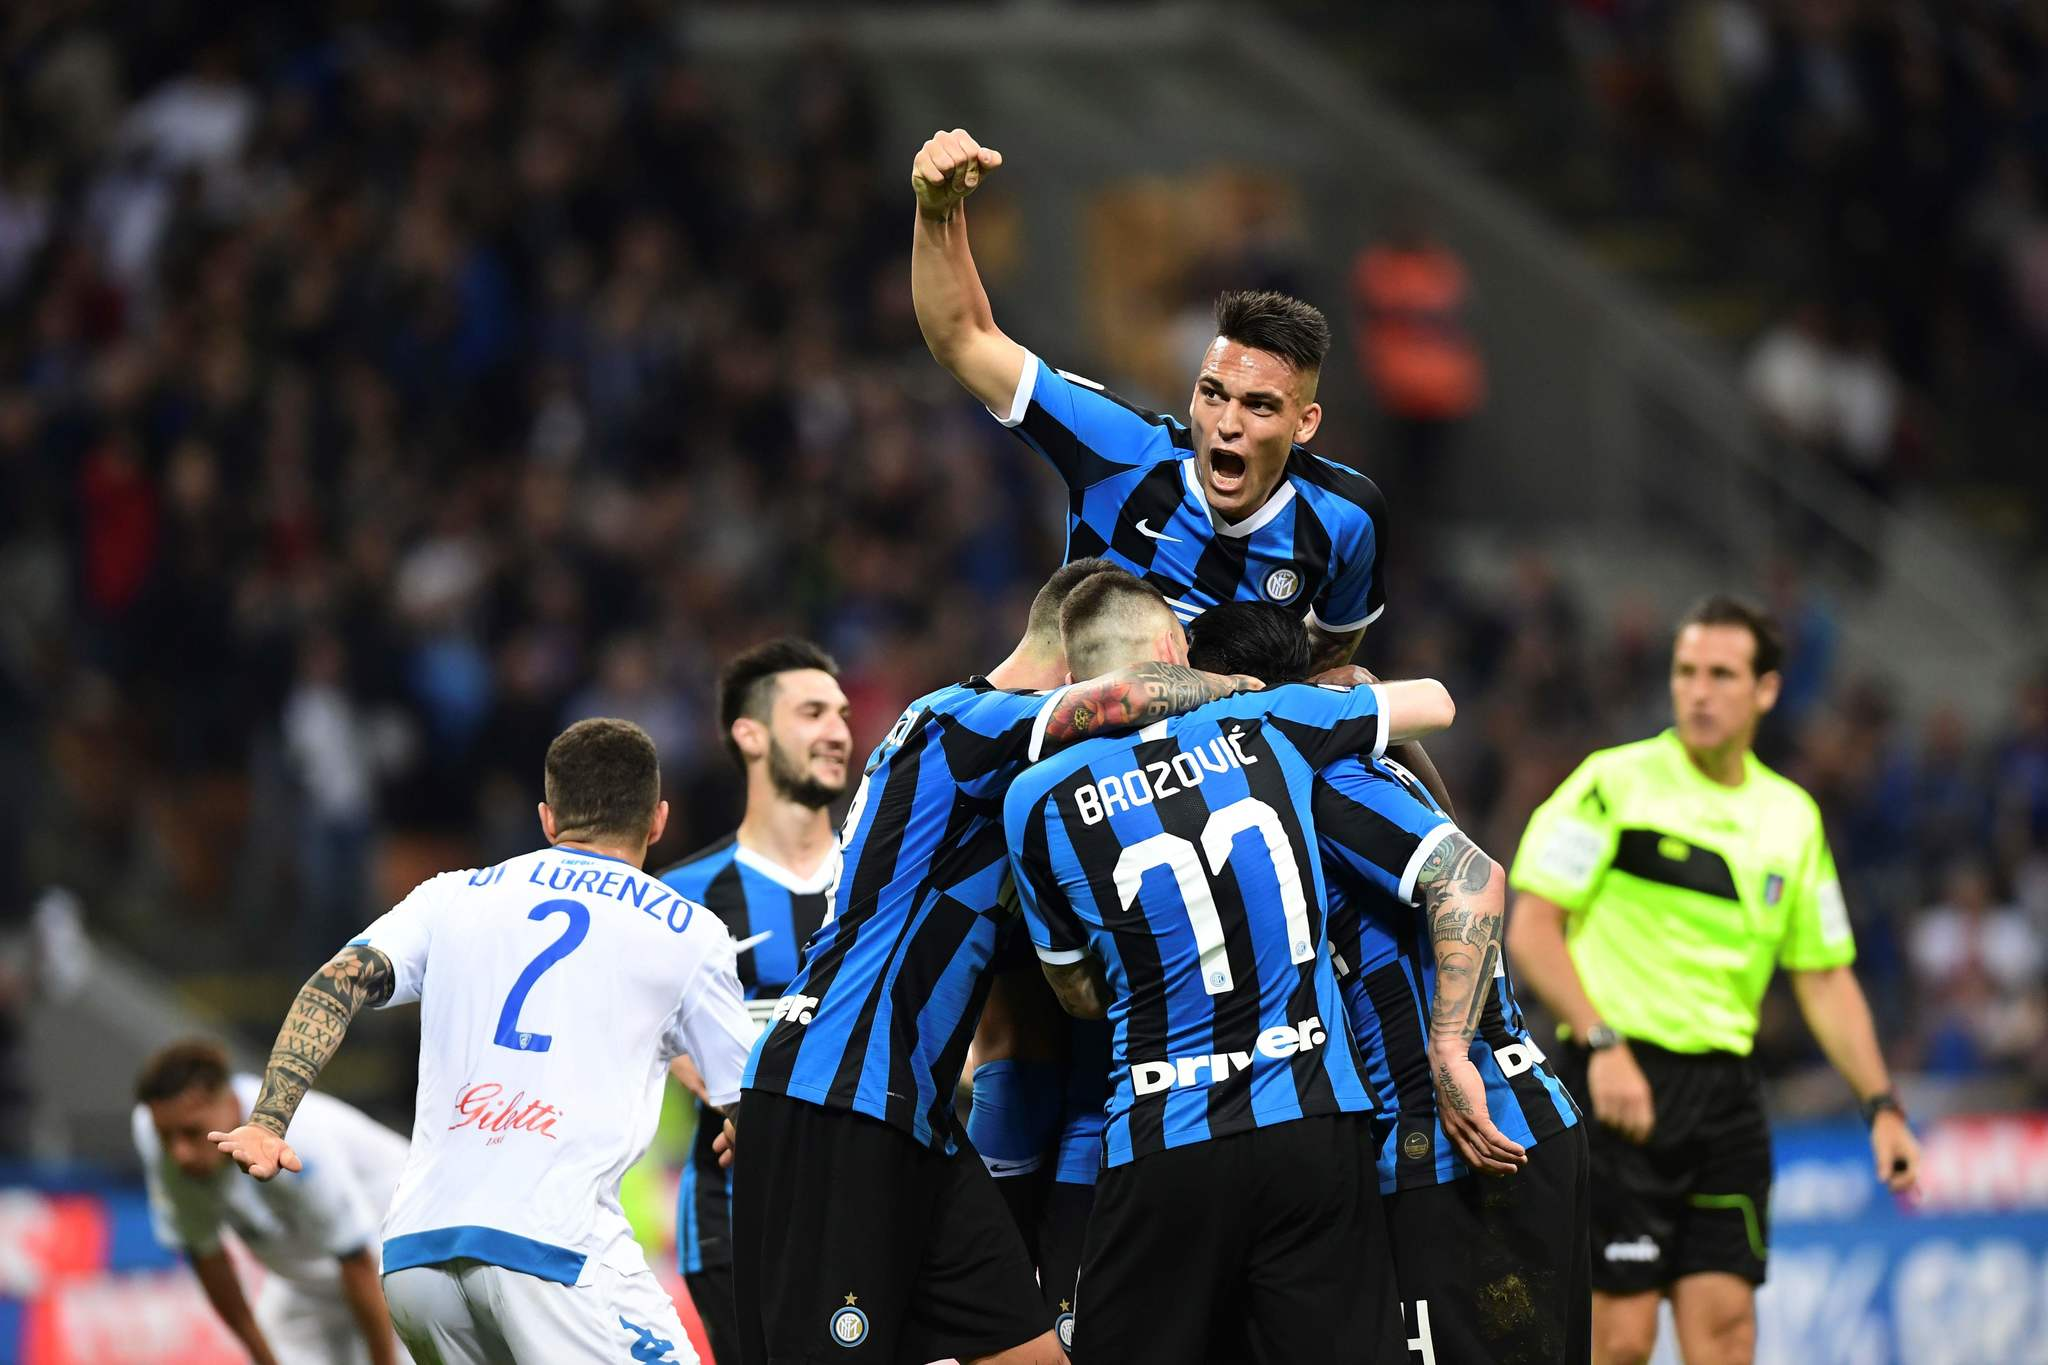 <HIT>Inter</HIT>s Belgium midfielder Radja Nainggolan (not seen) is congratulated by teammates after scoring his team second goal during the Italian Serie A football match between <HIT>Inter</HIT> Milan and Empoli on May 26, 2019 at the San Siro stadium in Milan. (Photo by Miguel MEDINA / AFP)